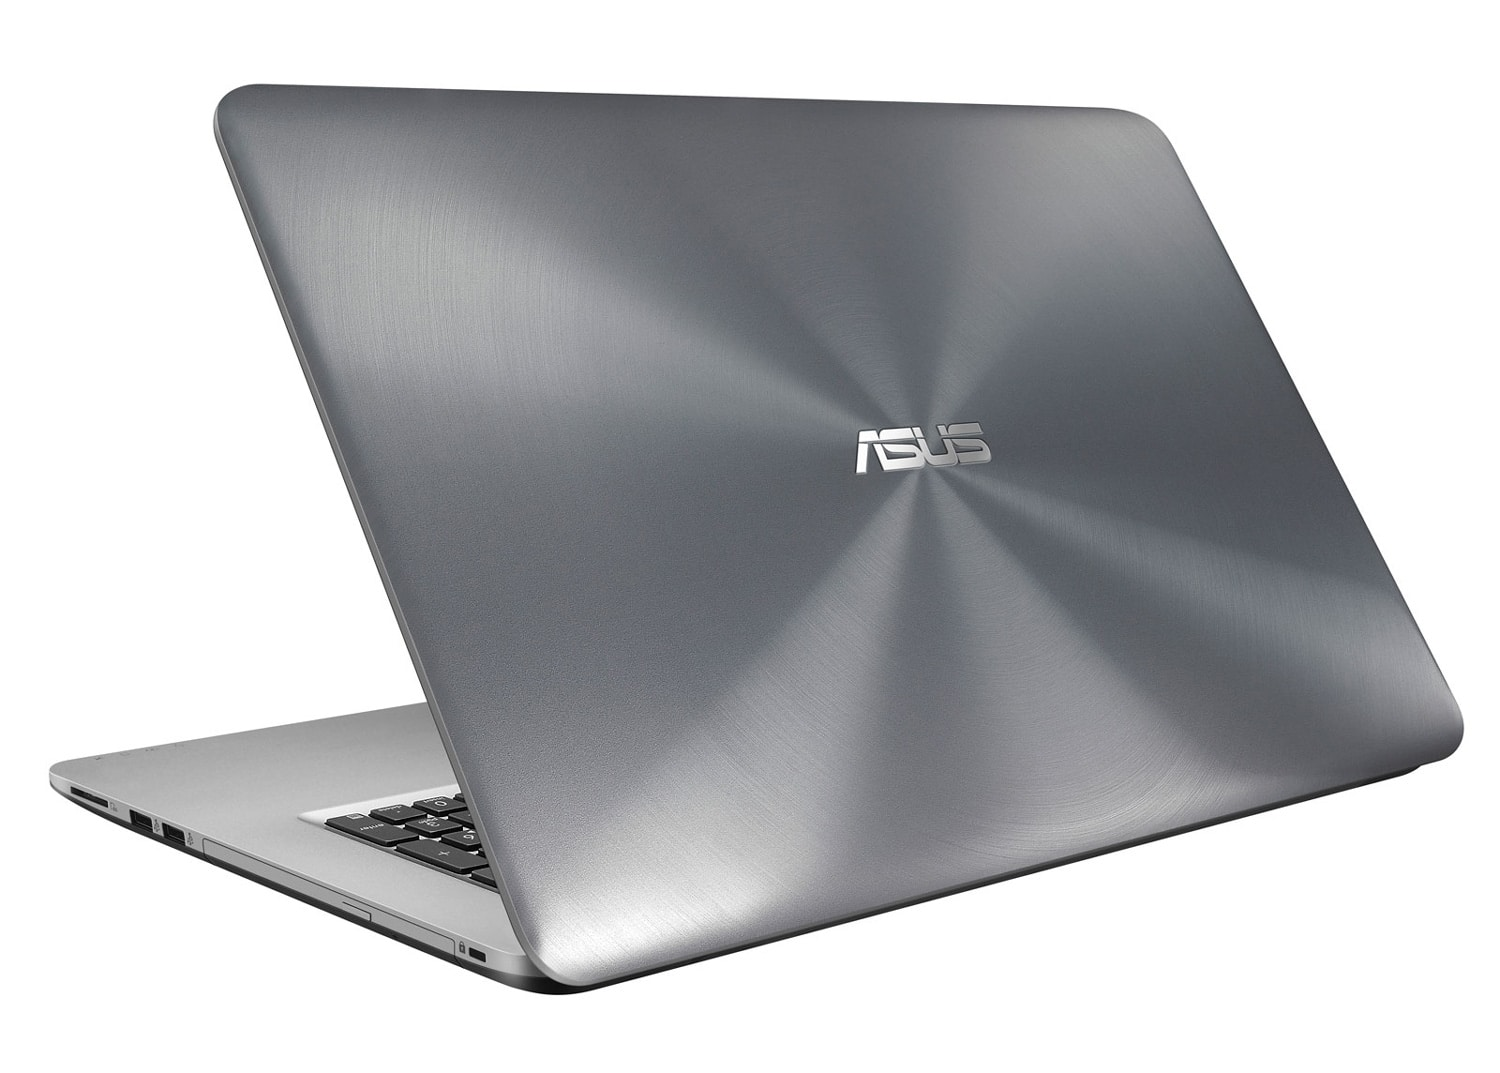 Asus R753UQ-T4370T, PC portable 17 pouces 12Go Full SSD 940MX i7 Kaby 1049€